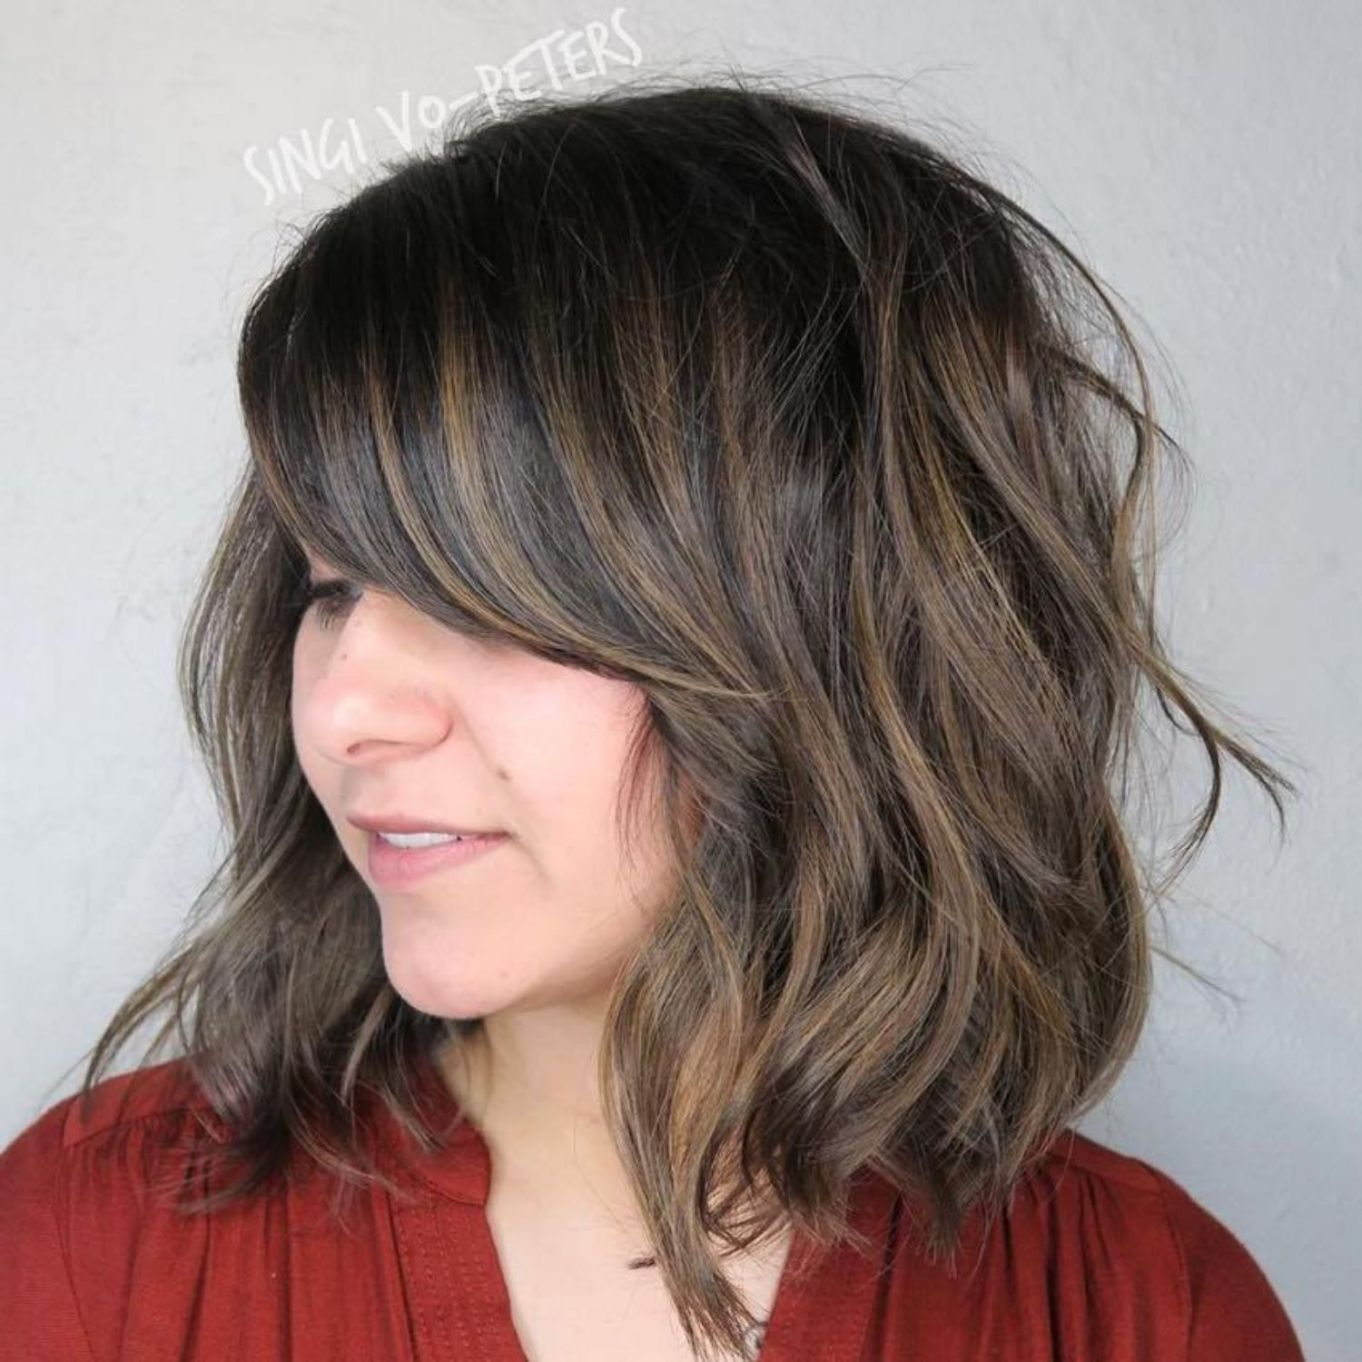 Wavy Bob With Side Bangs Haircut For Thick Hair Thick Hair Styles Side Bangs Hairstyles